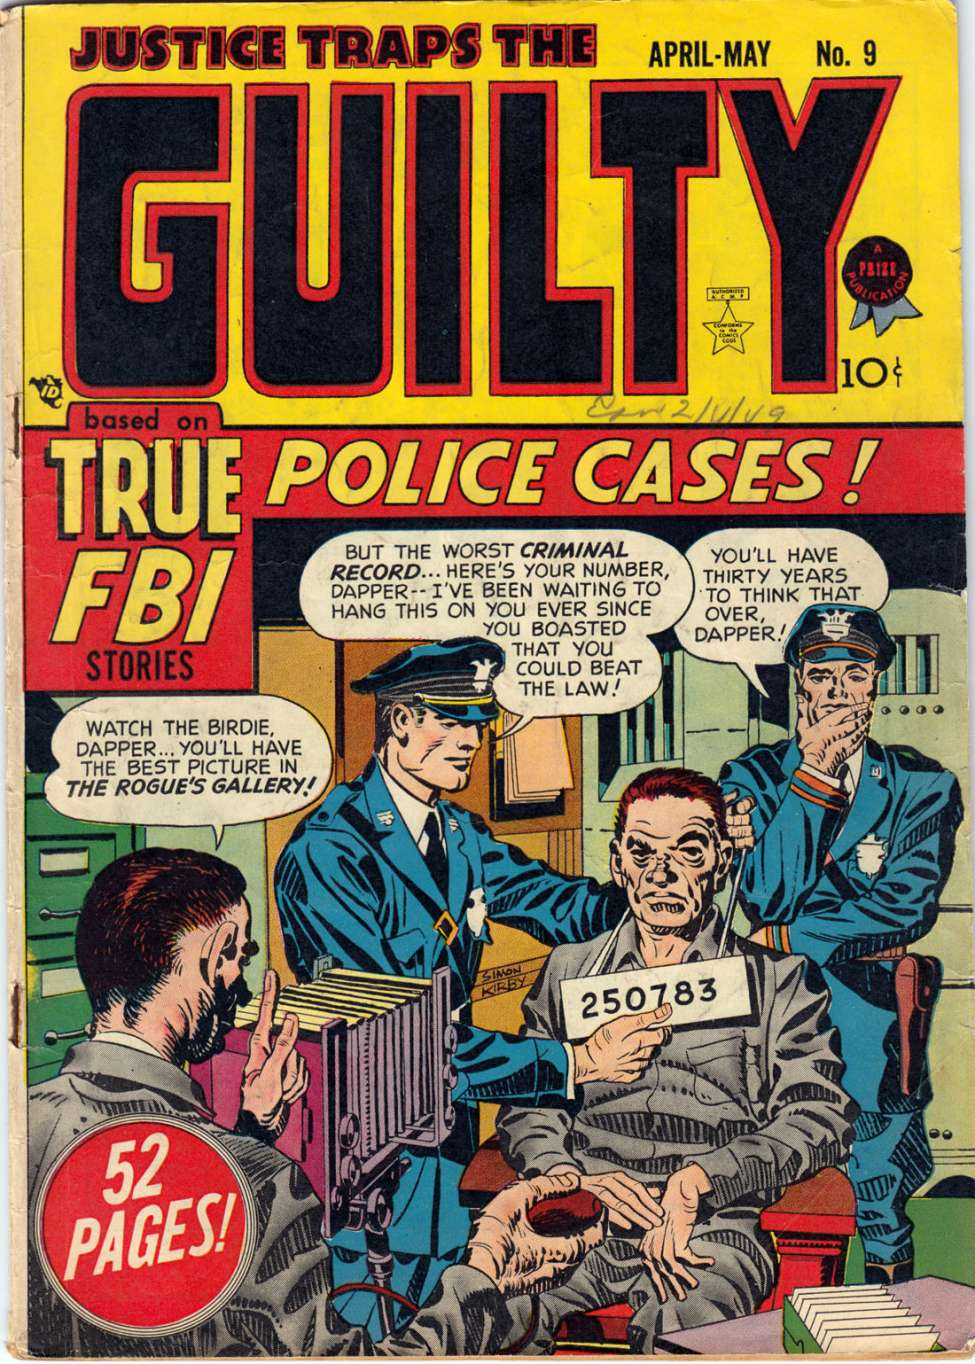 Comic Book Cover For Justice Traps the Guilty v2 3 (9)